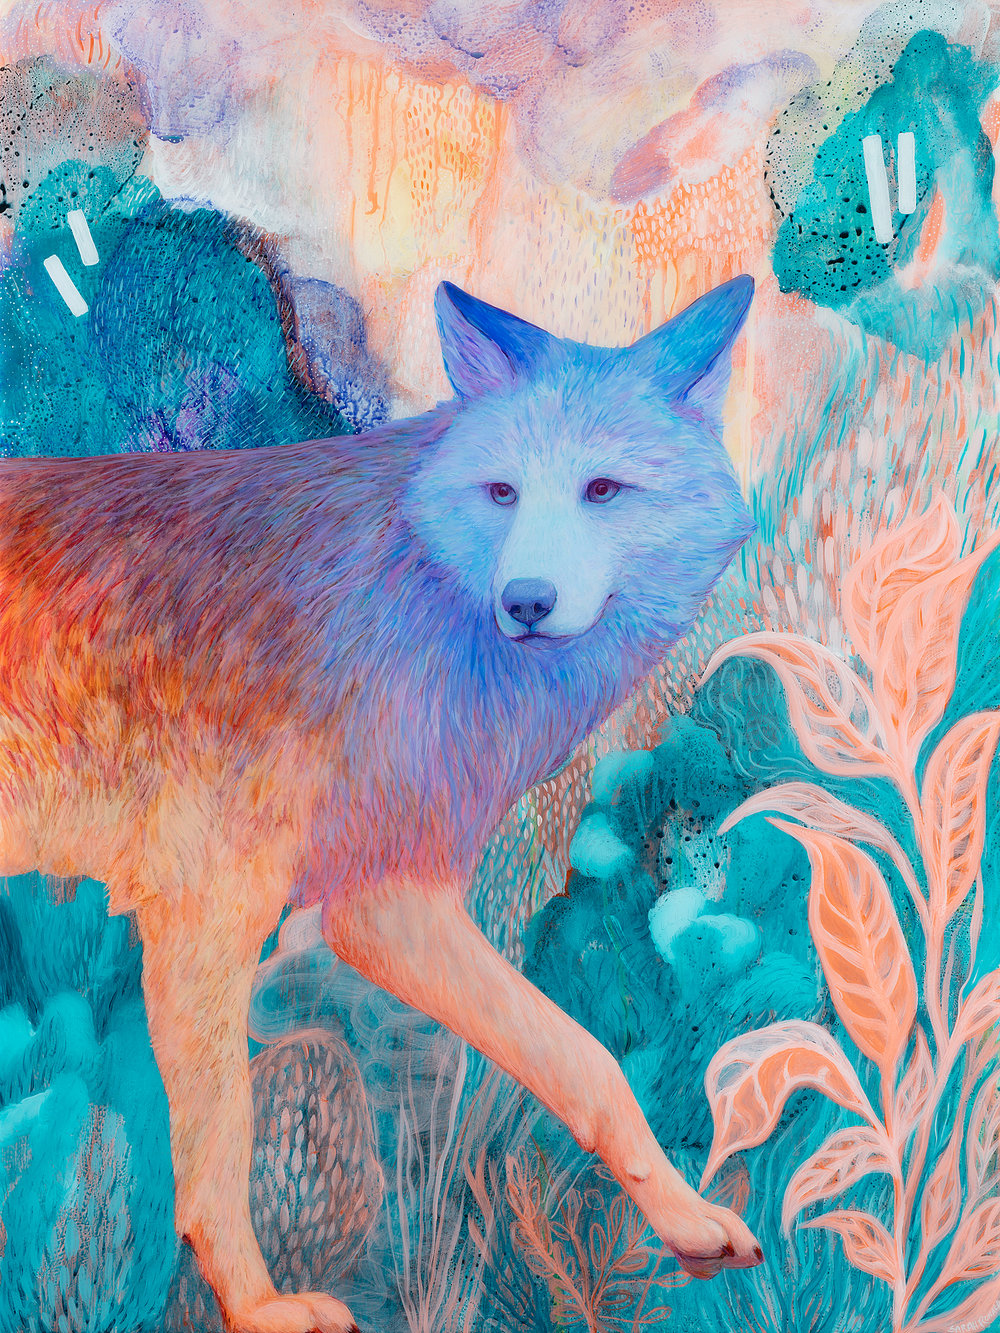 Zen Coyote , 2018. Coloured pencil, acrylic, and resin on wood panel, 24x18 inches